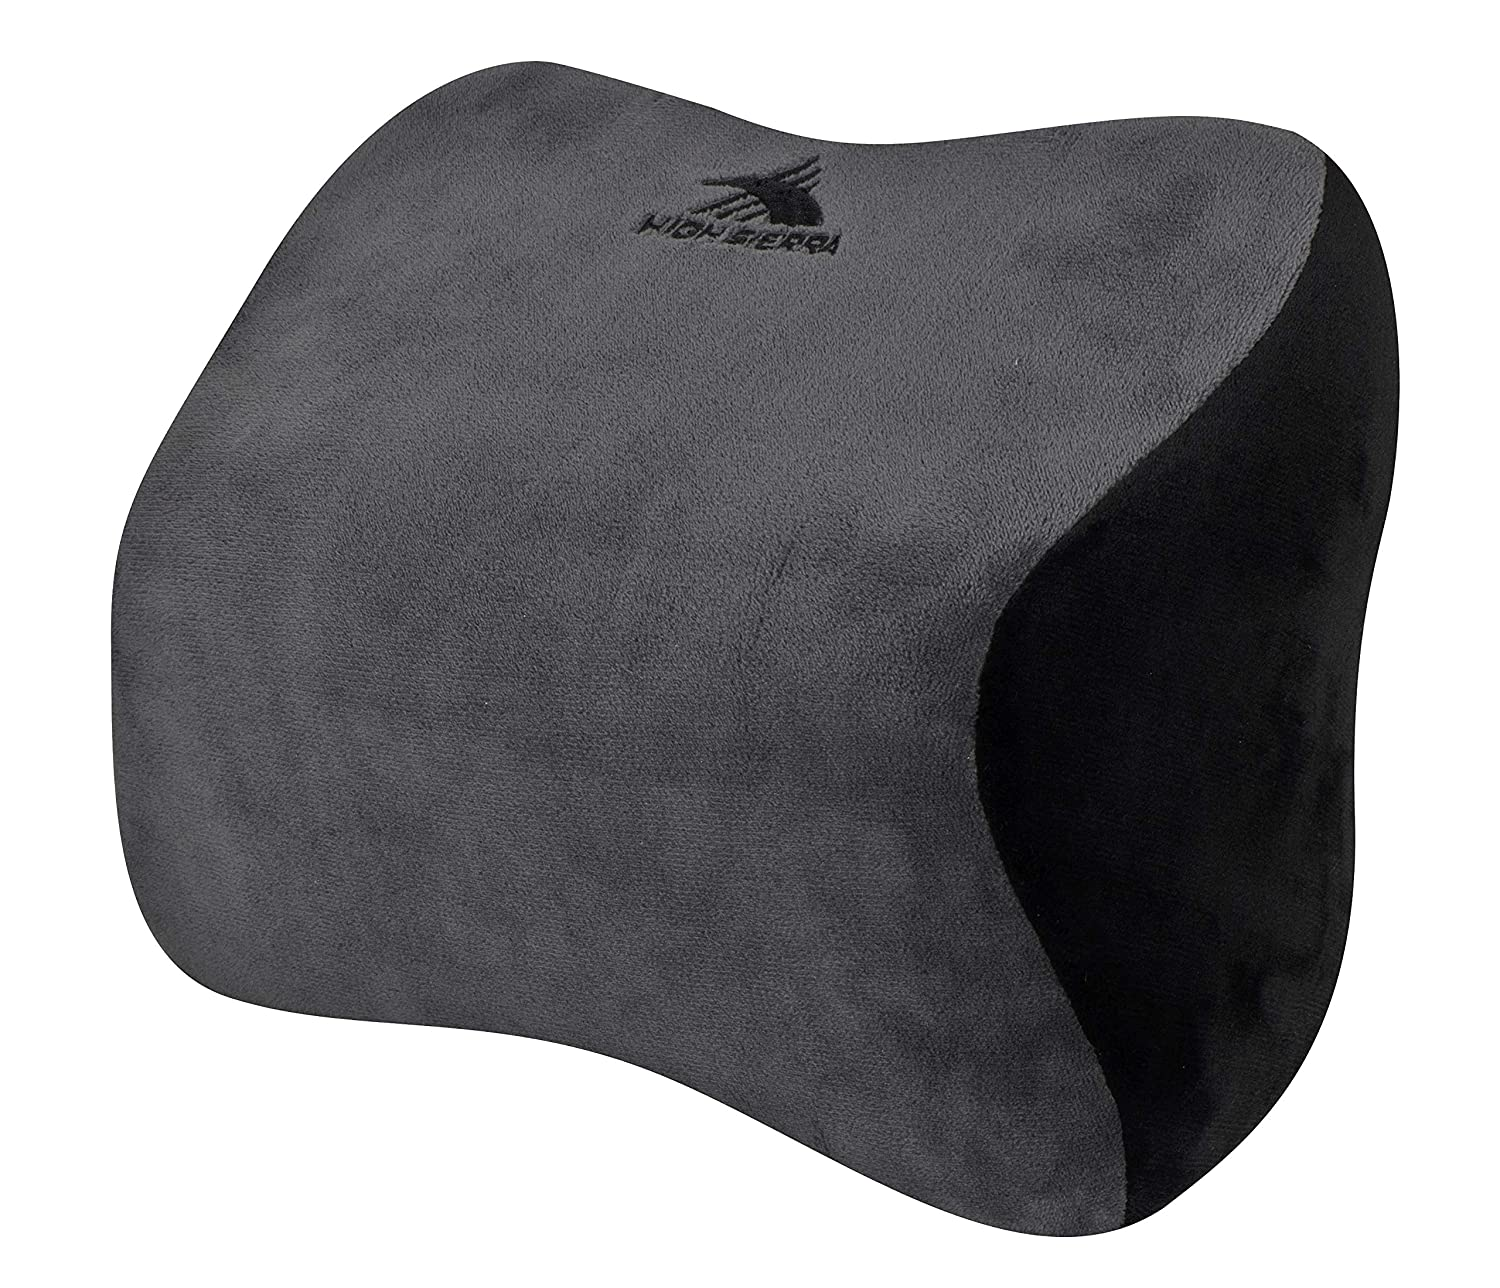 Plane \ 100/% Pure Memory Foam \ Removable Cover Car High Sierra HS1432 Soft Seat Cushion for Office Chair